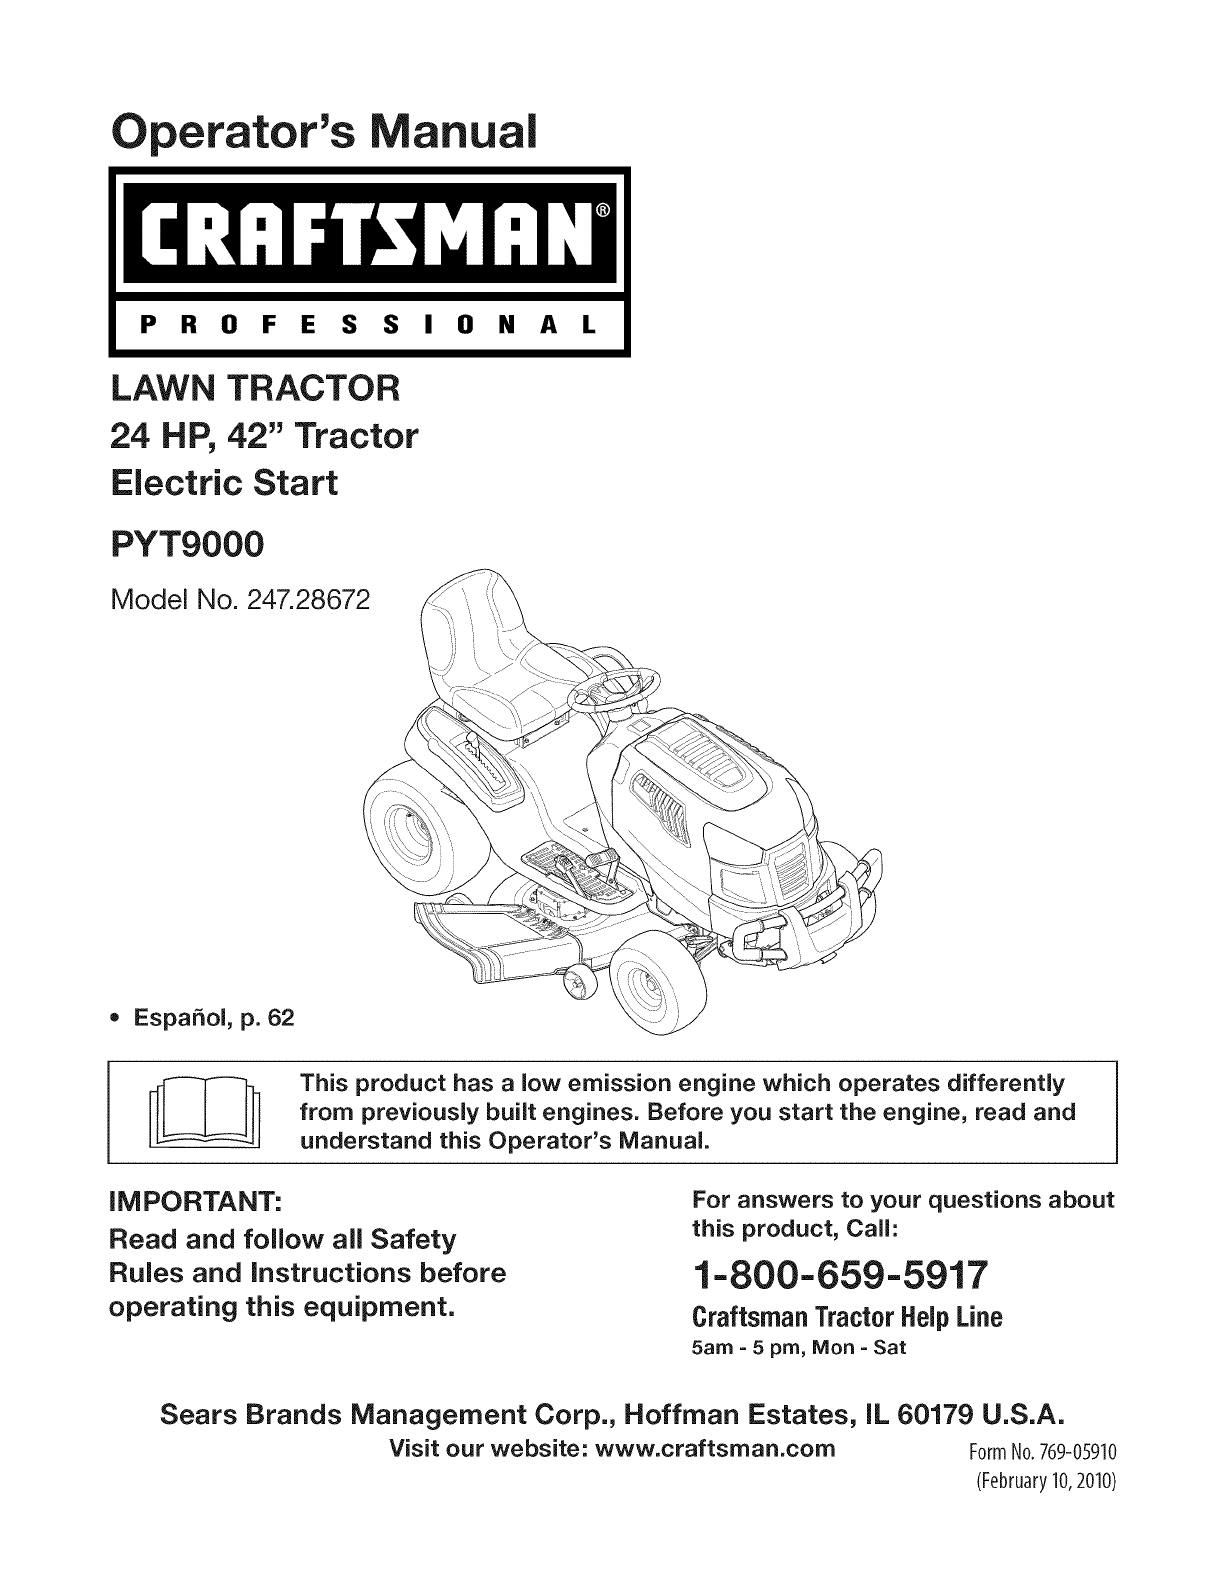 Craftsman Model 917 Wiring Diagram 34 Images Sears 26 Horse Kohler Engine Electrical Dbd31f11 917d 44da 8ef1 E7030c6b4234 Bg1 Lawn Mower Pyt 9000 User Guide Manualsonline Com